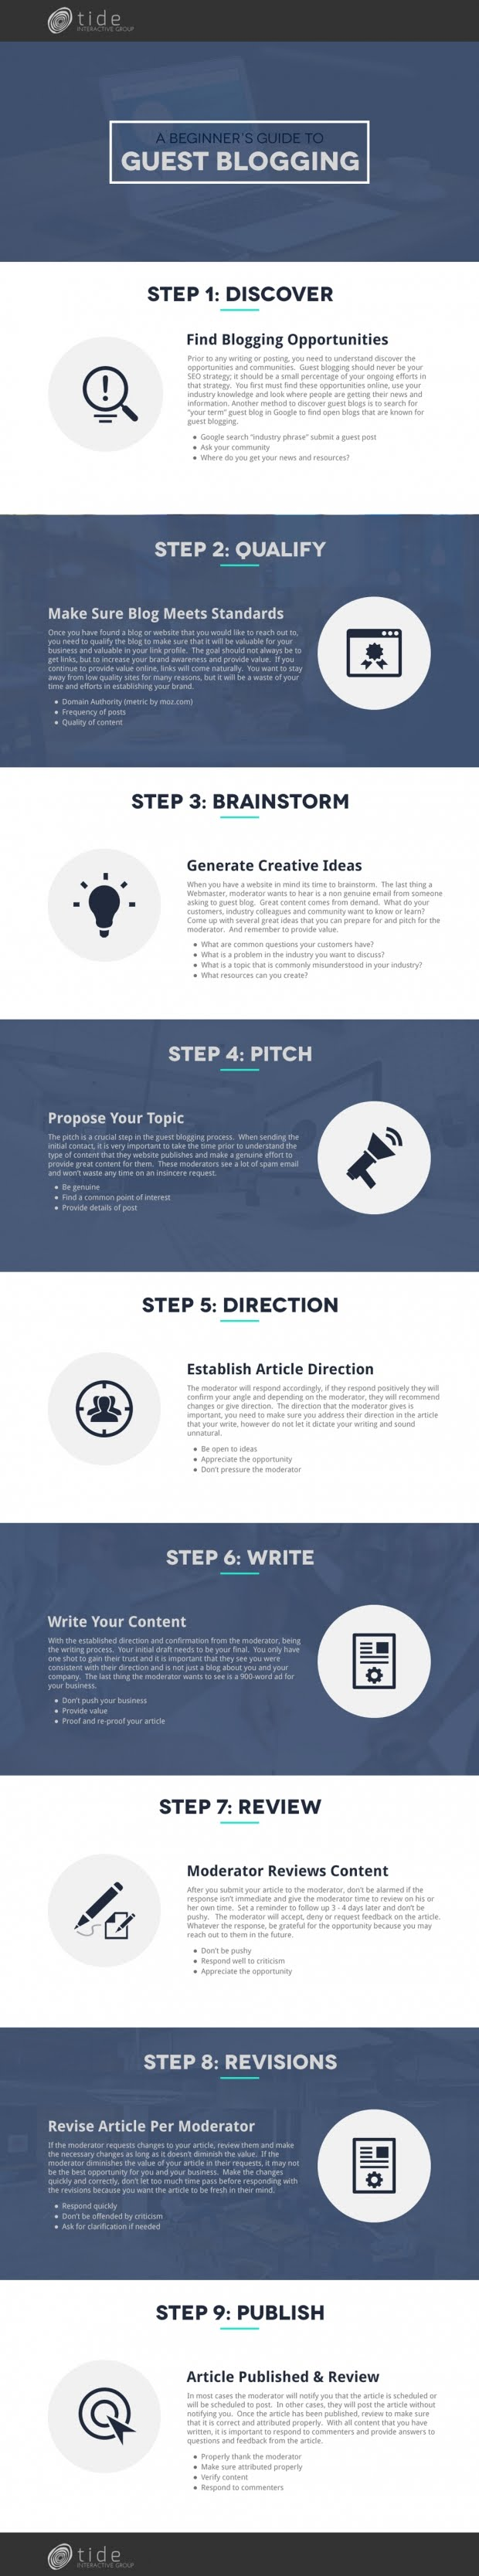 A Beginner's Guide To Guest Blogging - #infographic